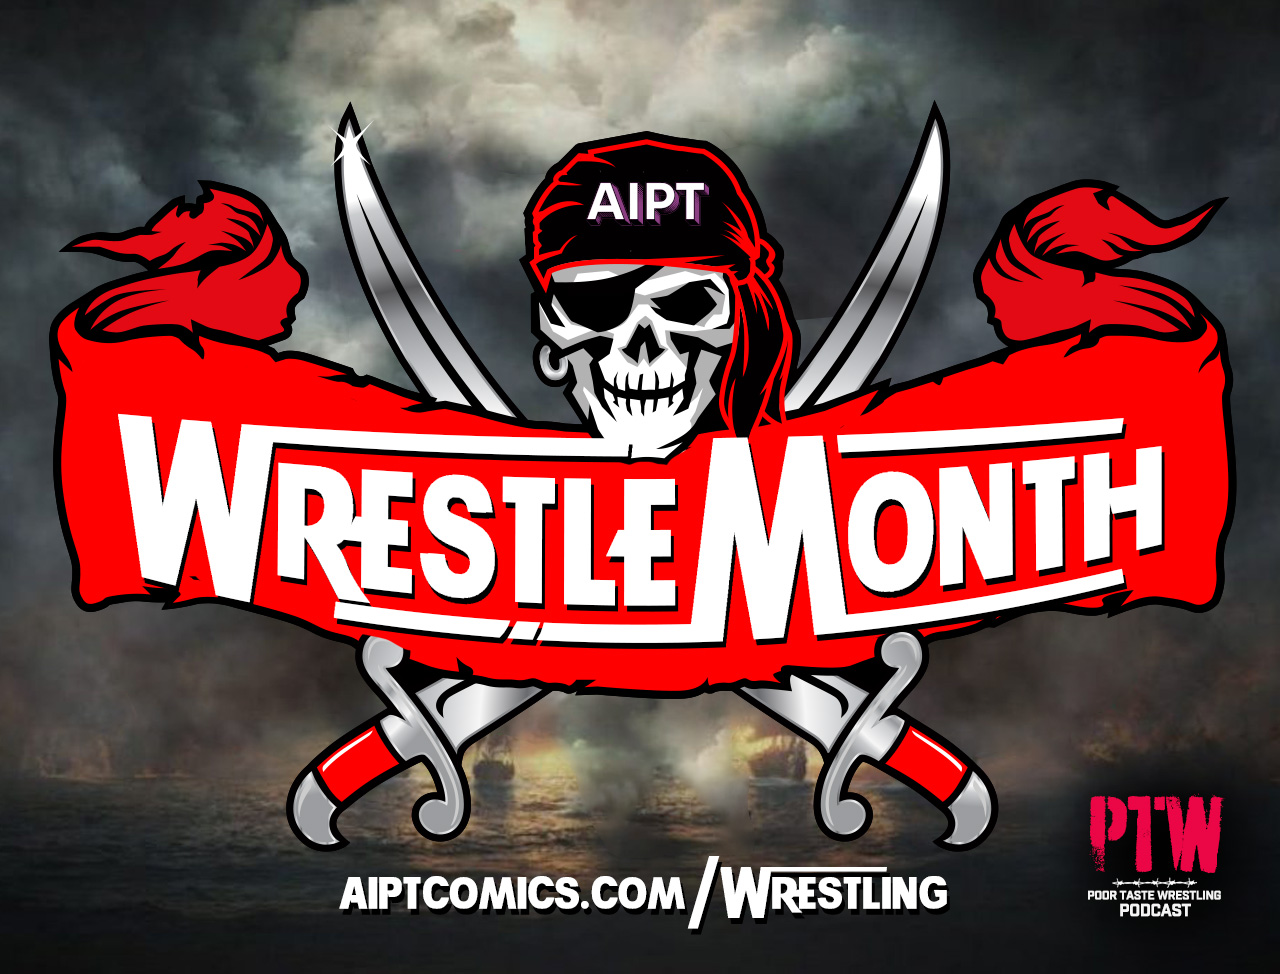 Welcome to AIPT WrestleMonth 2021!